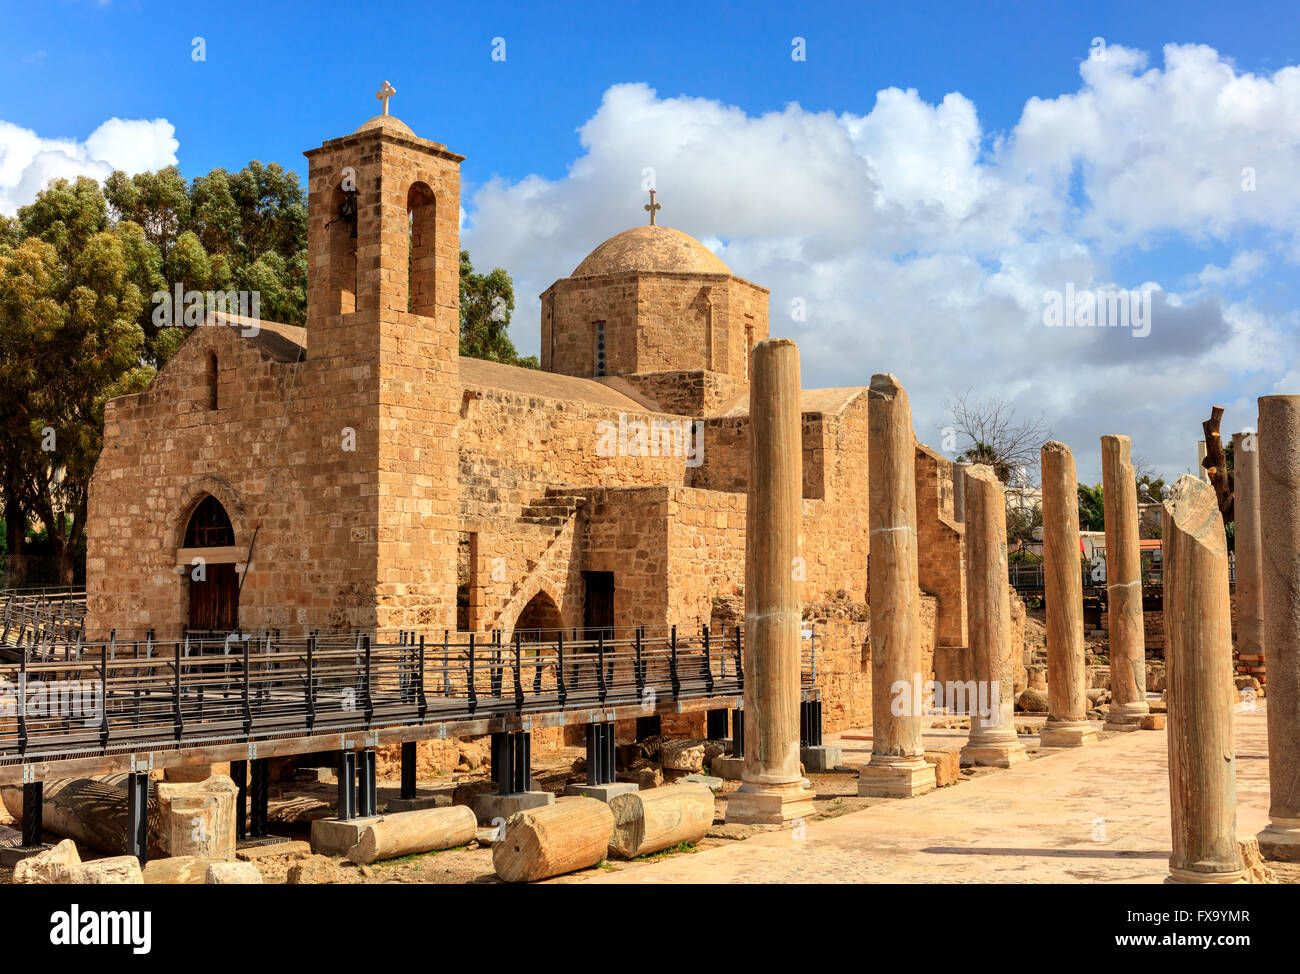 The Panagia Chrysopolitissa church built over the ruins of the largest Early Byzantine basilica. - Stock Image